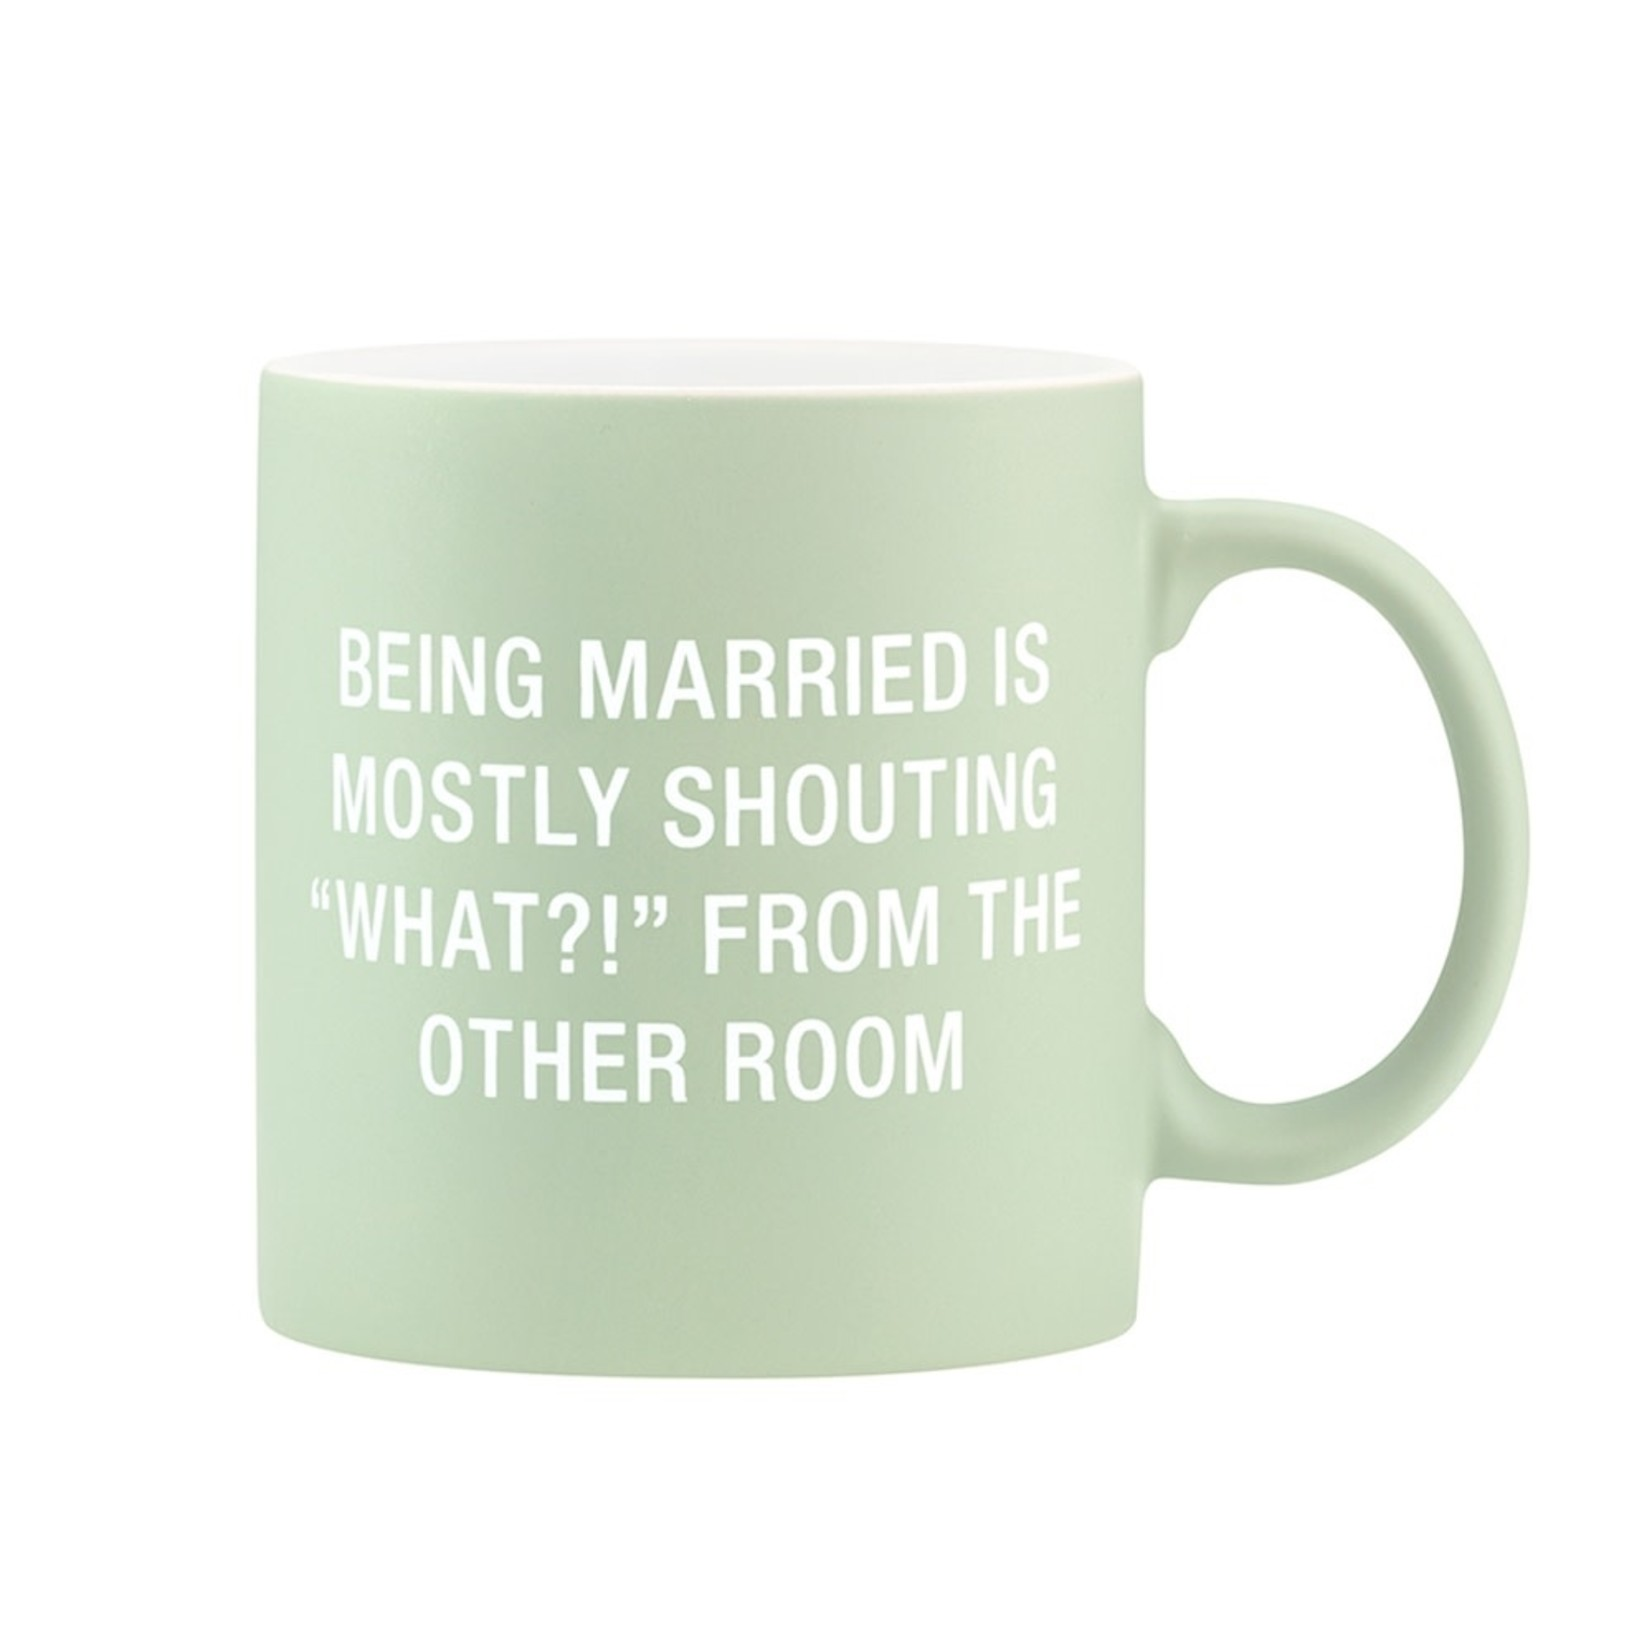 About Face Designs Inc About Face Designs 20oz Mug Being Married